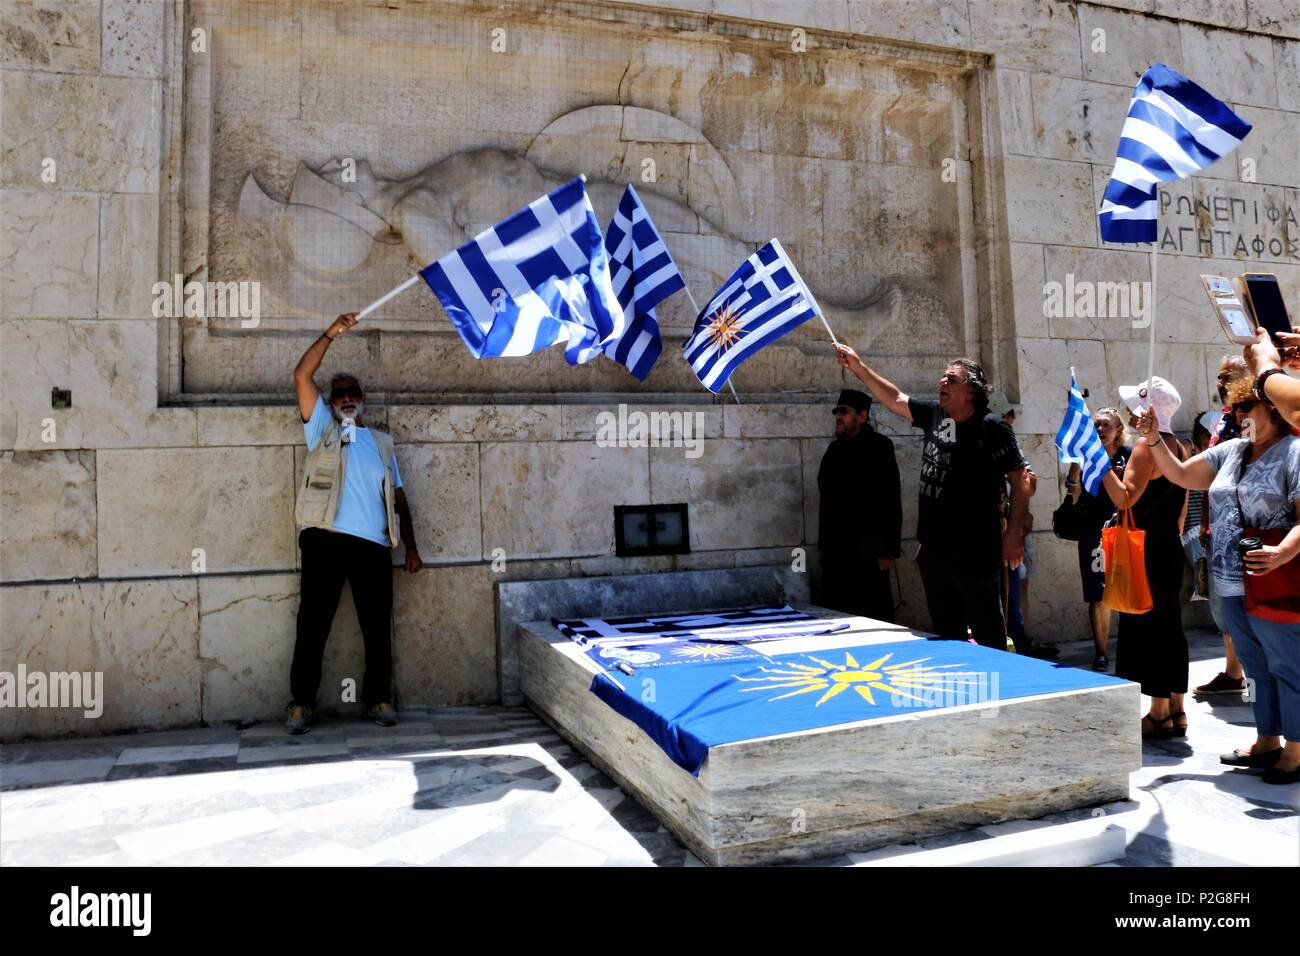 Athens Greece 15th June 2018 Protesters Waving Flags In Front Of